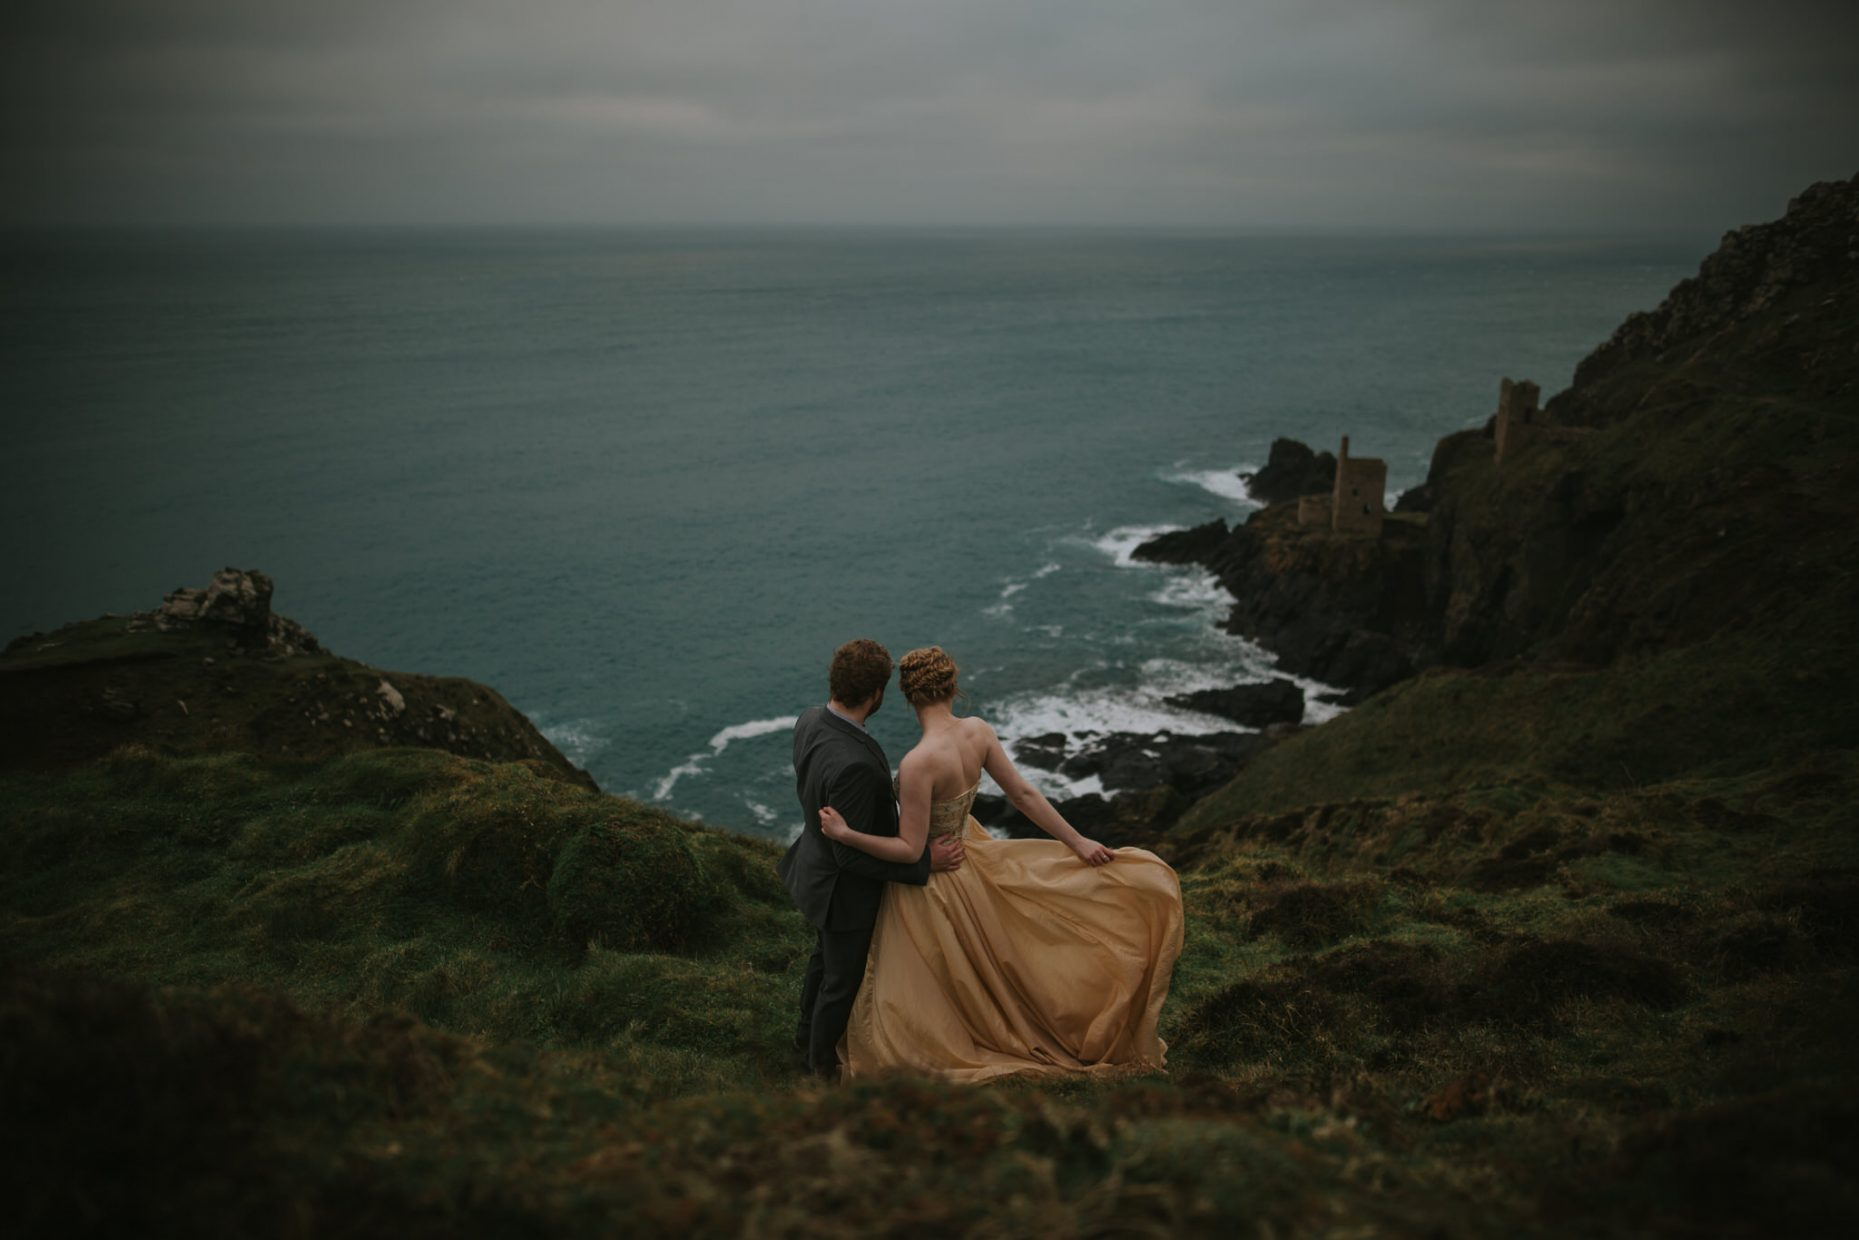 ELOPMENET PHOTOGRAPHER A couple hug on the edge of a cliff during their wedding in Cornwall, the brides golden dress is blowing in the wind